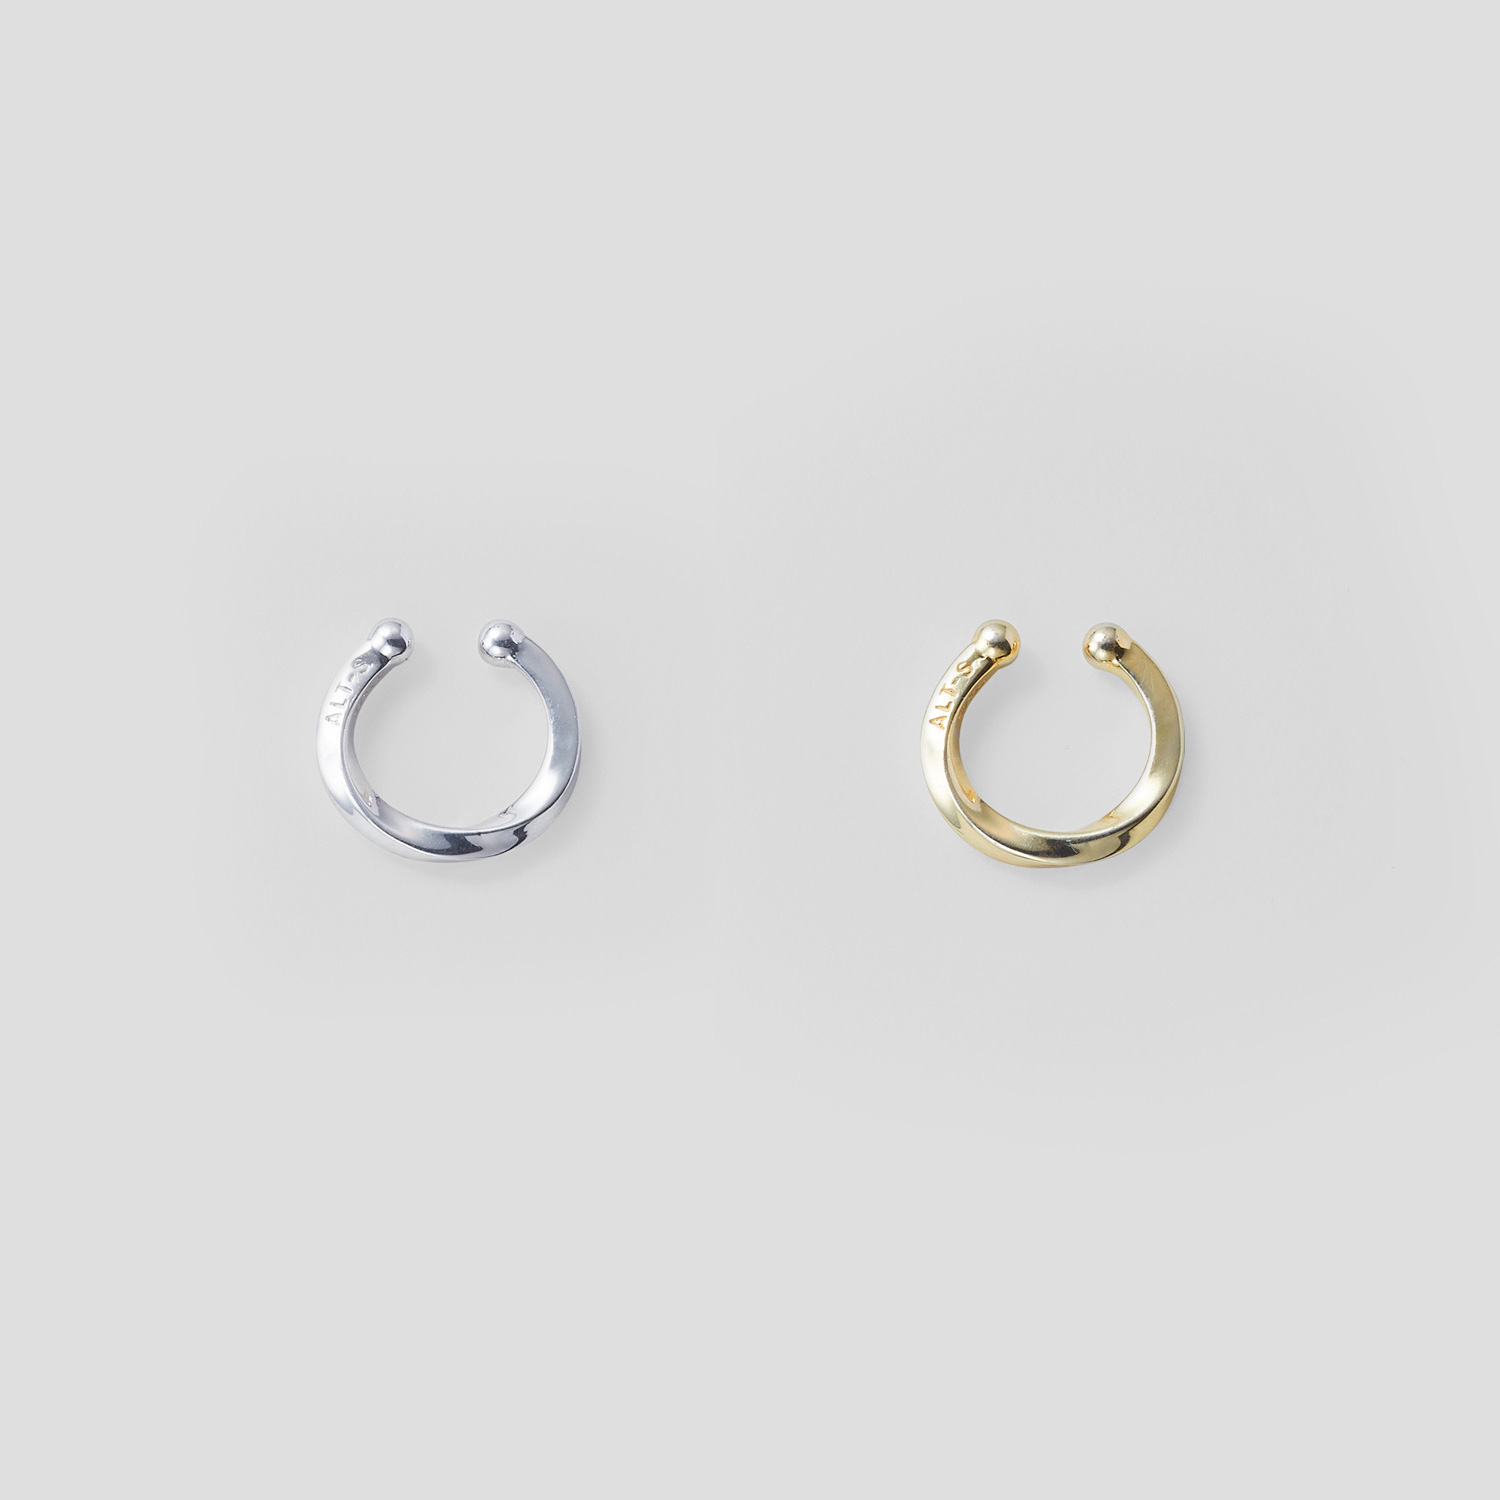 Common Ear Cuff Ring by ALT-S